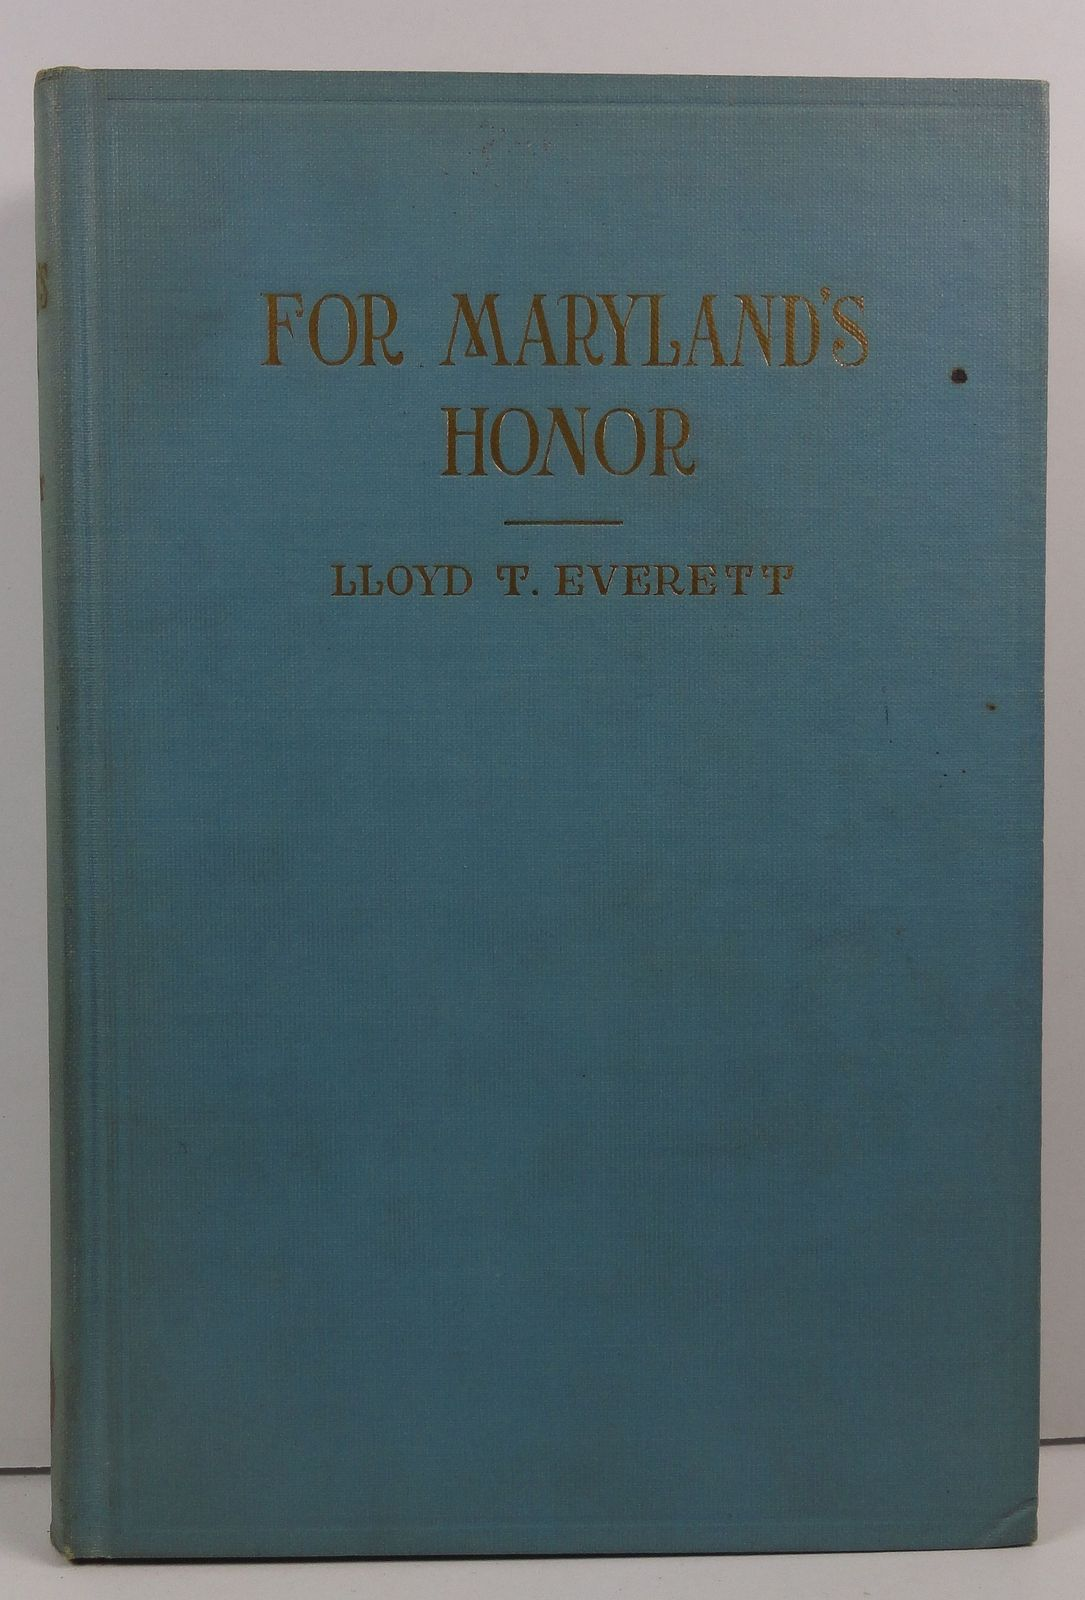 For Maryland's Honor Lloyd T. Everett 1922 Christopher Pub